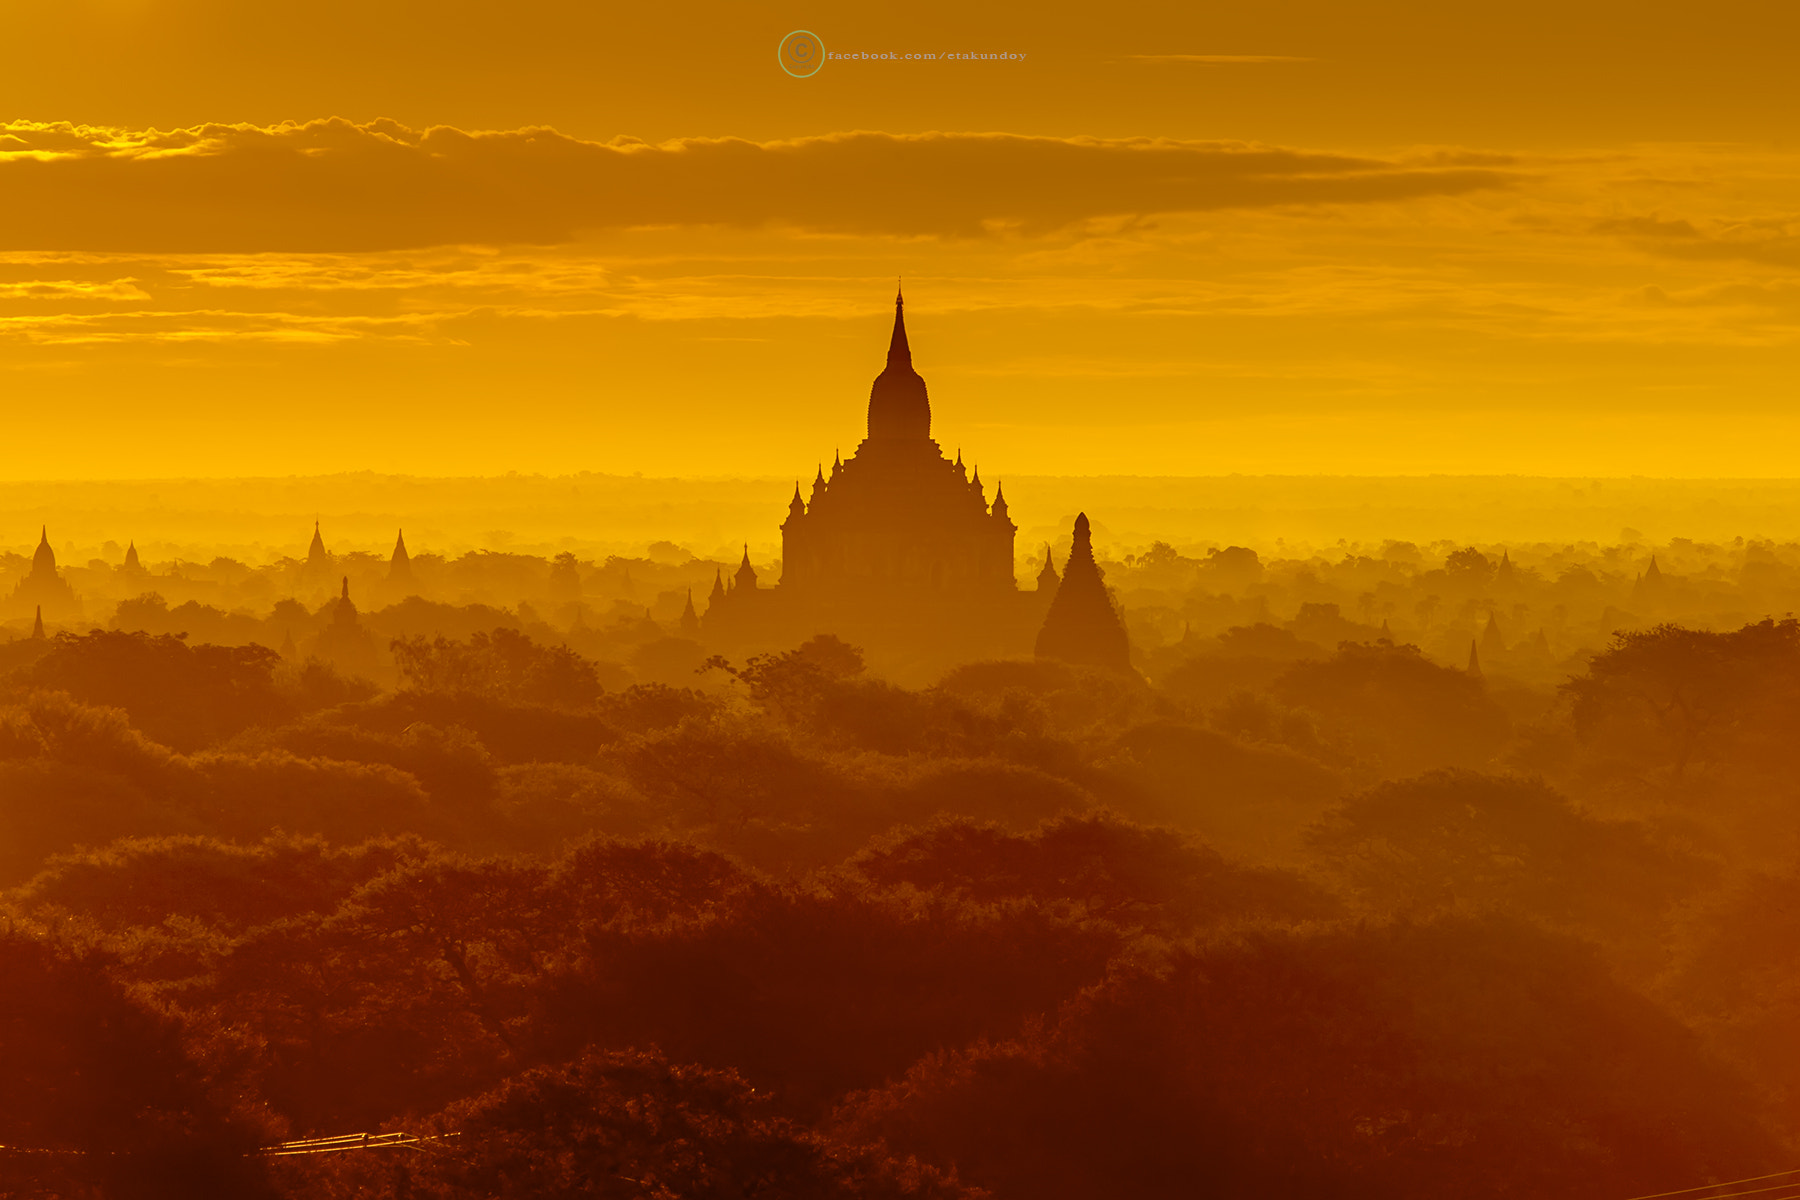 Photograph Bagan Sunrise by Tawan Chaisom on 500px